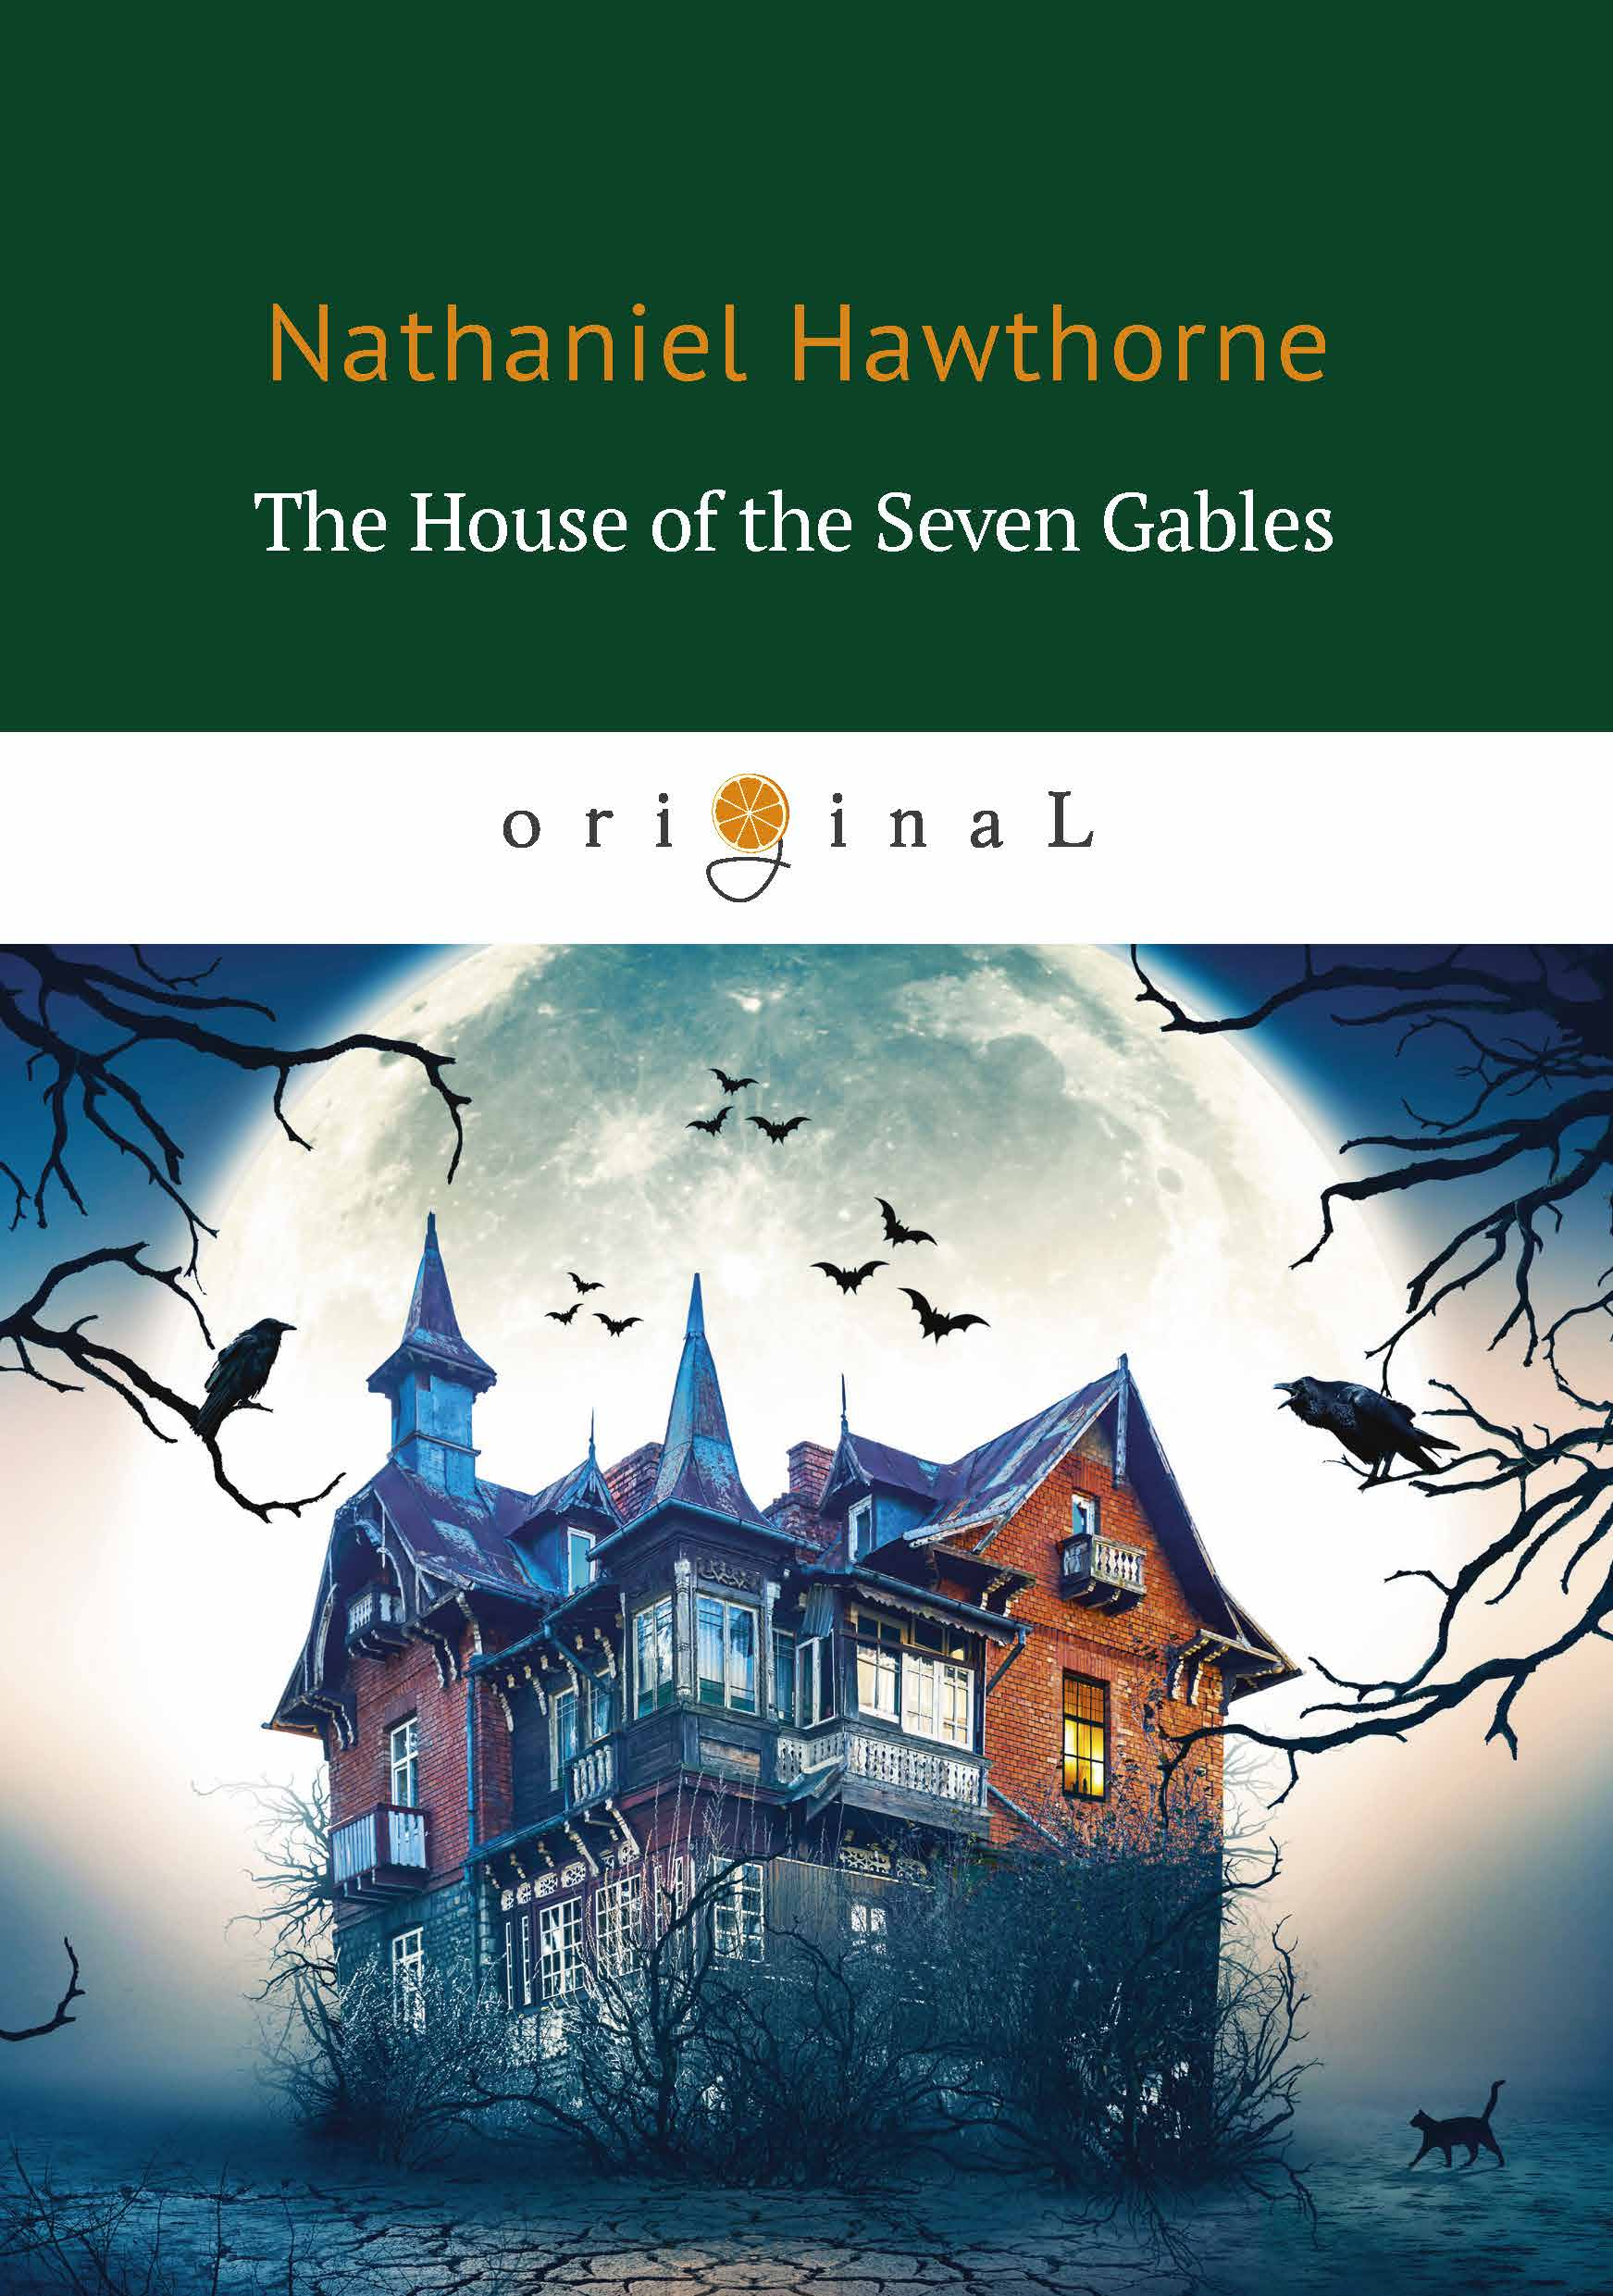 Nathaniel Hawthorne The House of the Seven Gables ISBN: 978-5-521-07052-7 the postmodern chandelier of the scandinavia minimalist american led lamp house creative personality chandelier fg297